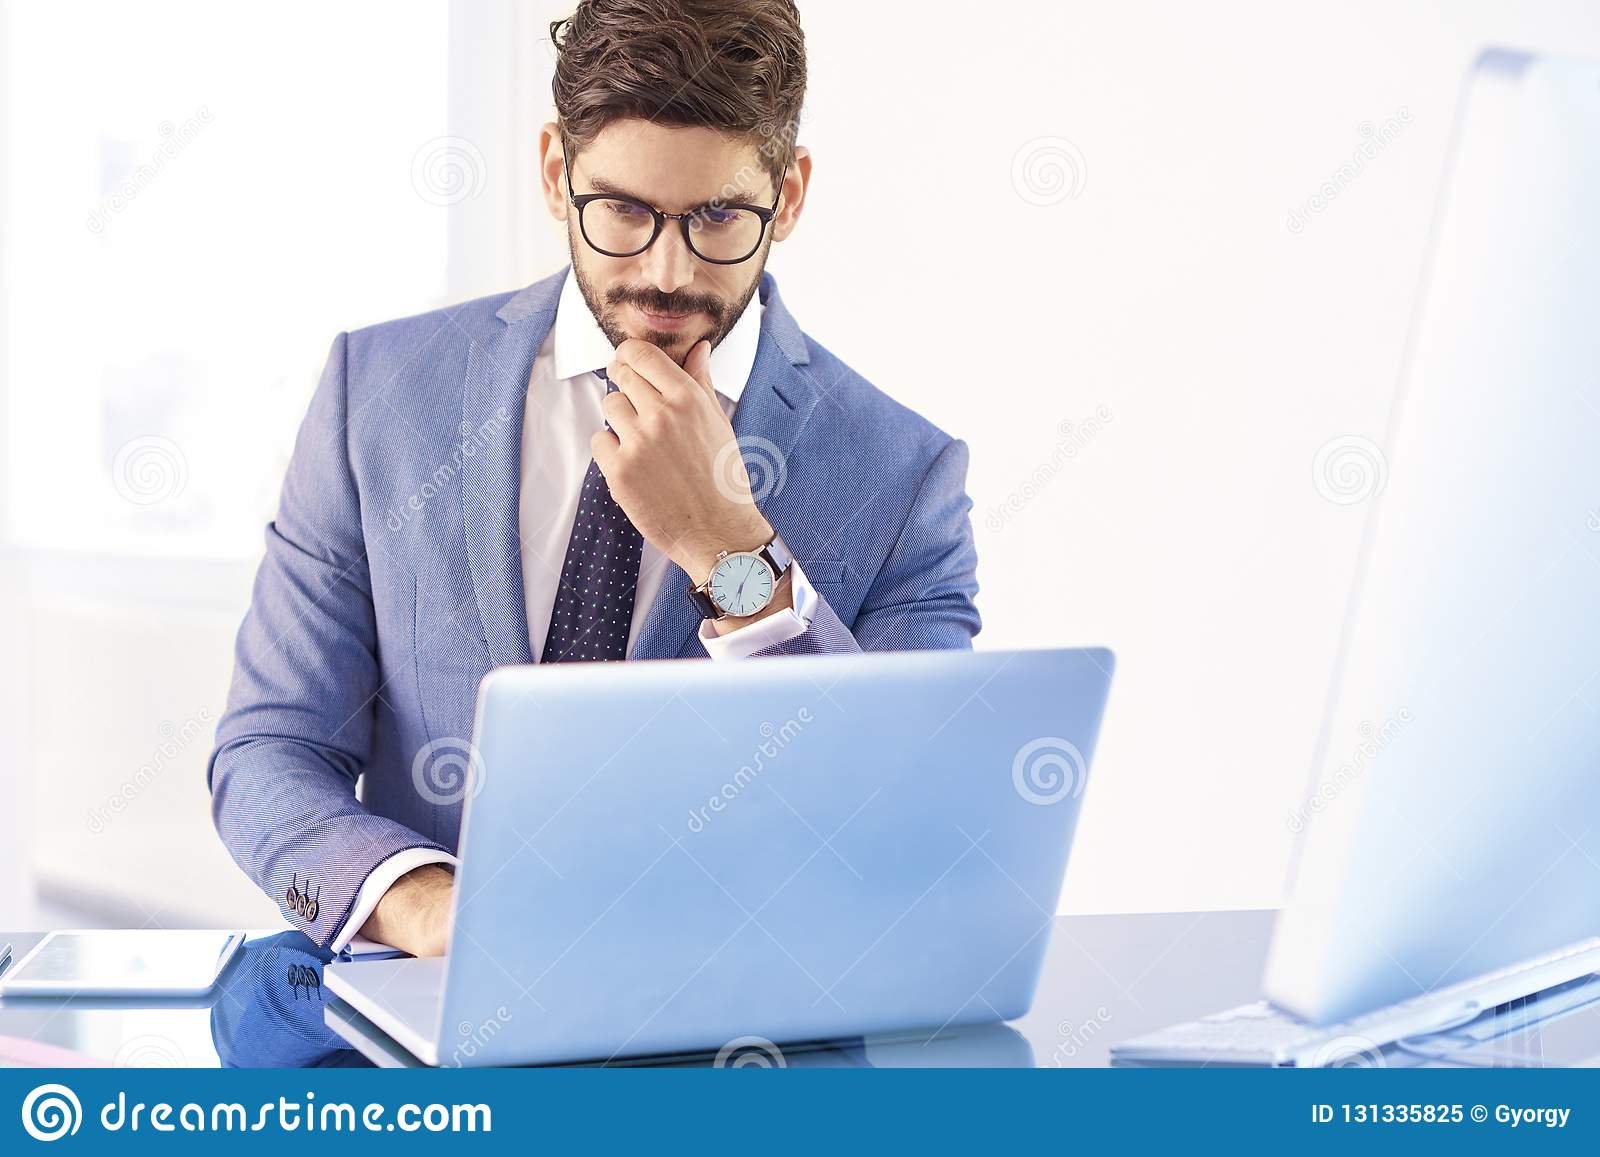 Investment Advisor Businessman Thinking While Sitting In